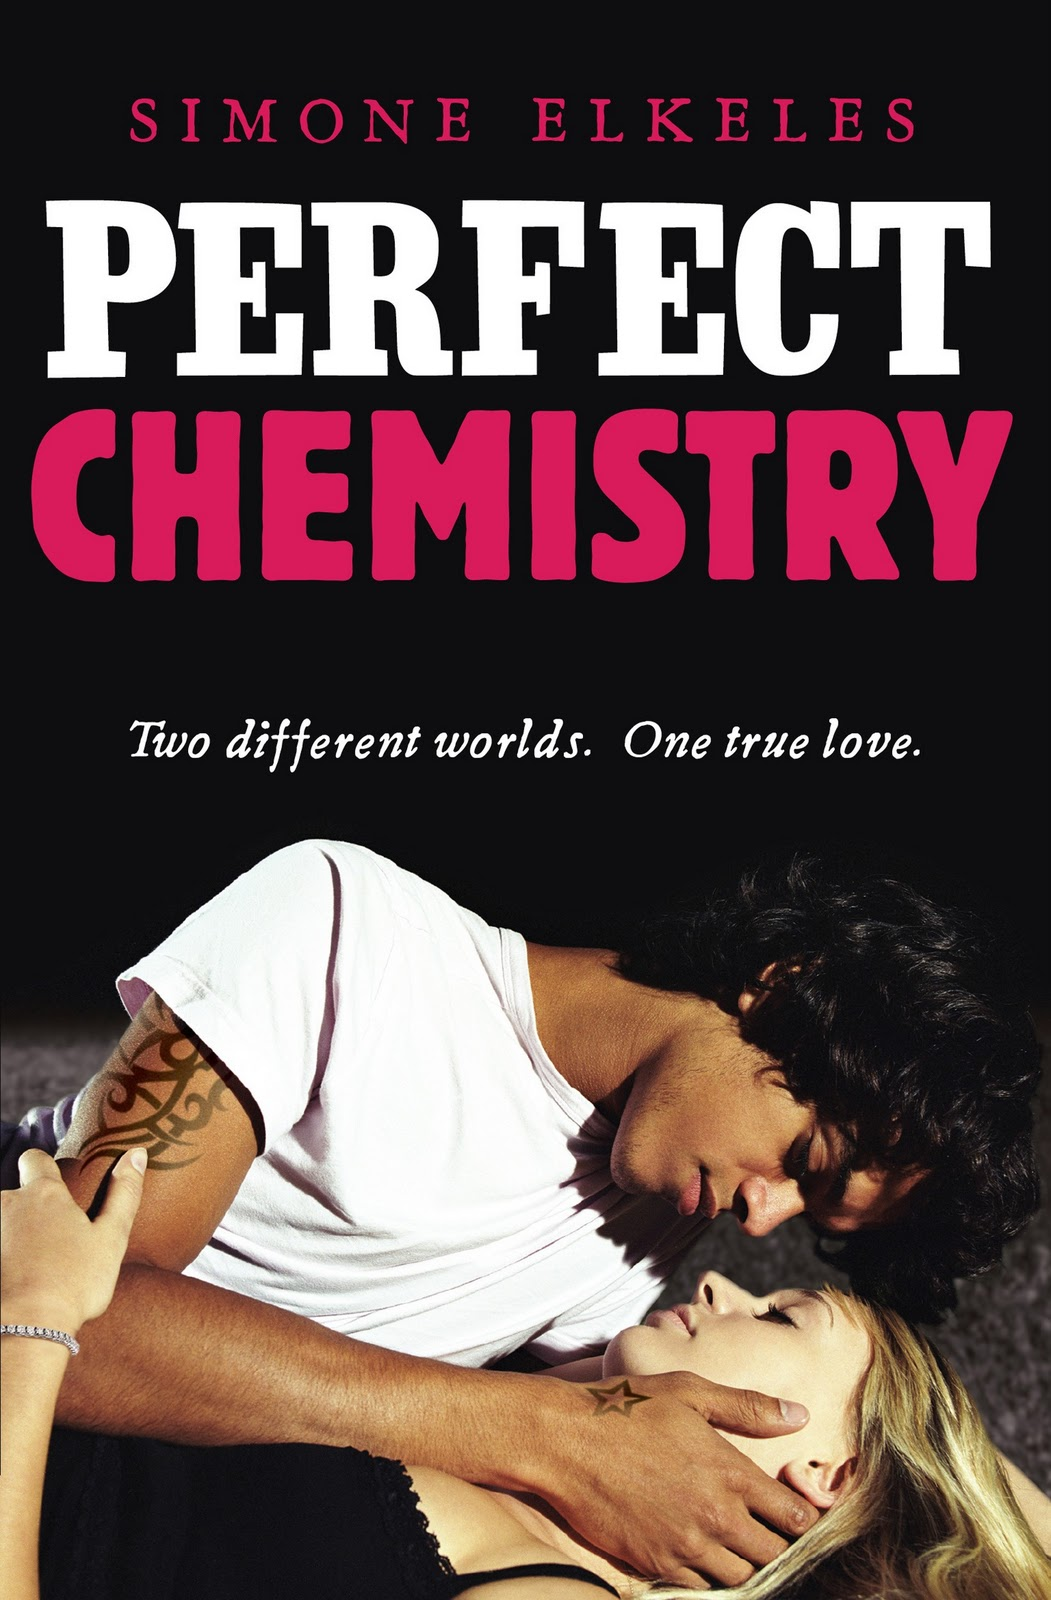 perfect chemistry Perfect chemistry kinky chronicles book 1pdf semantics (introducing linguistics) (483 reads) nackte geheimnisse (171 reads) d day through german eyes - book two.